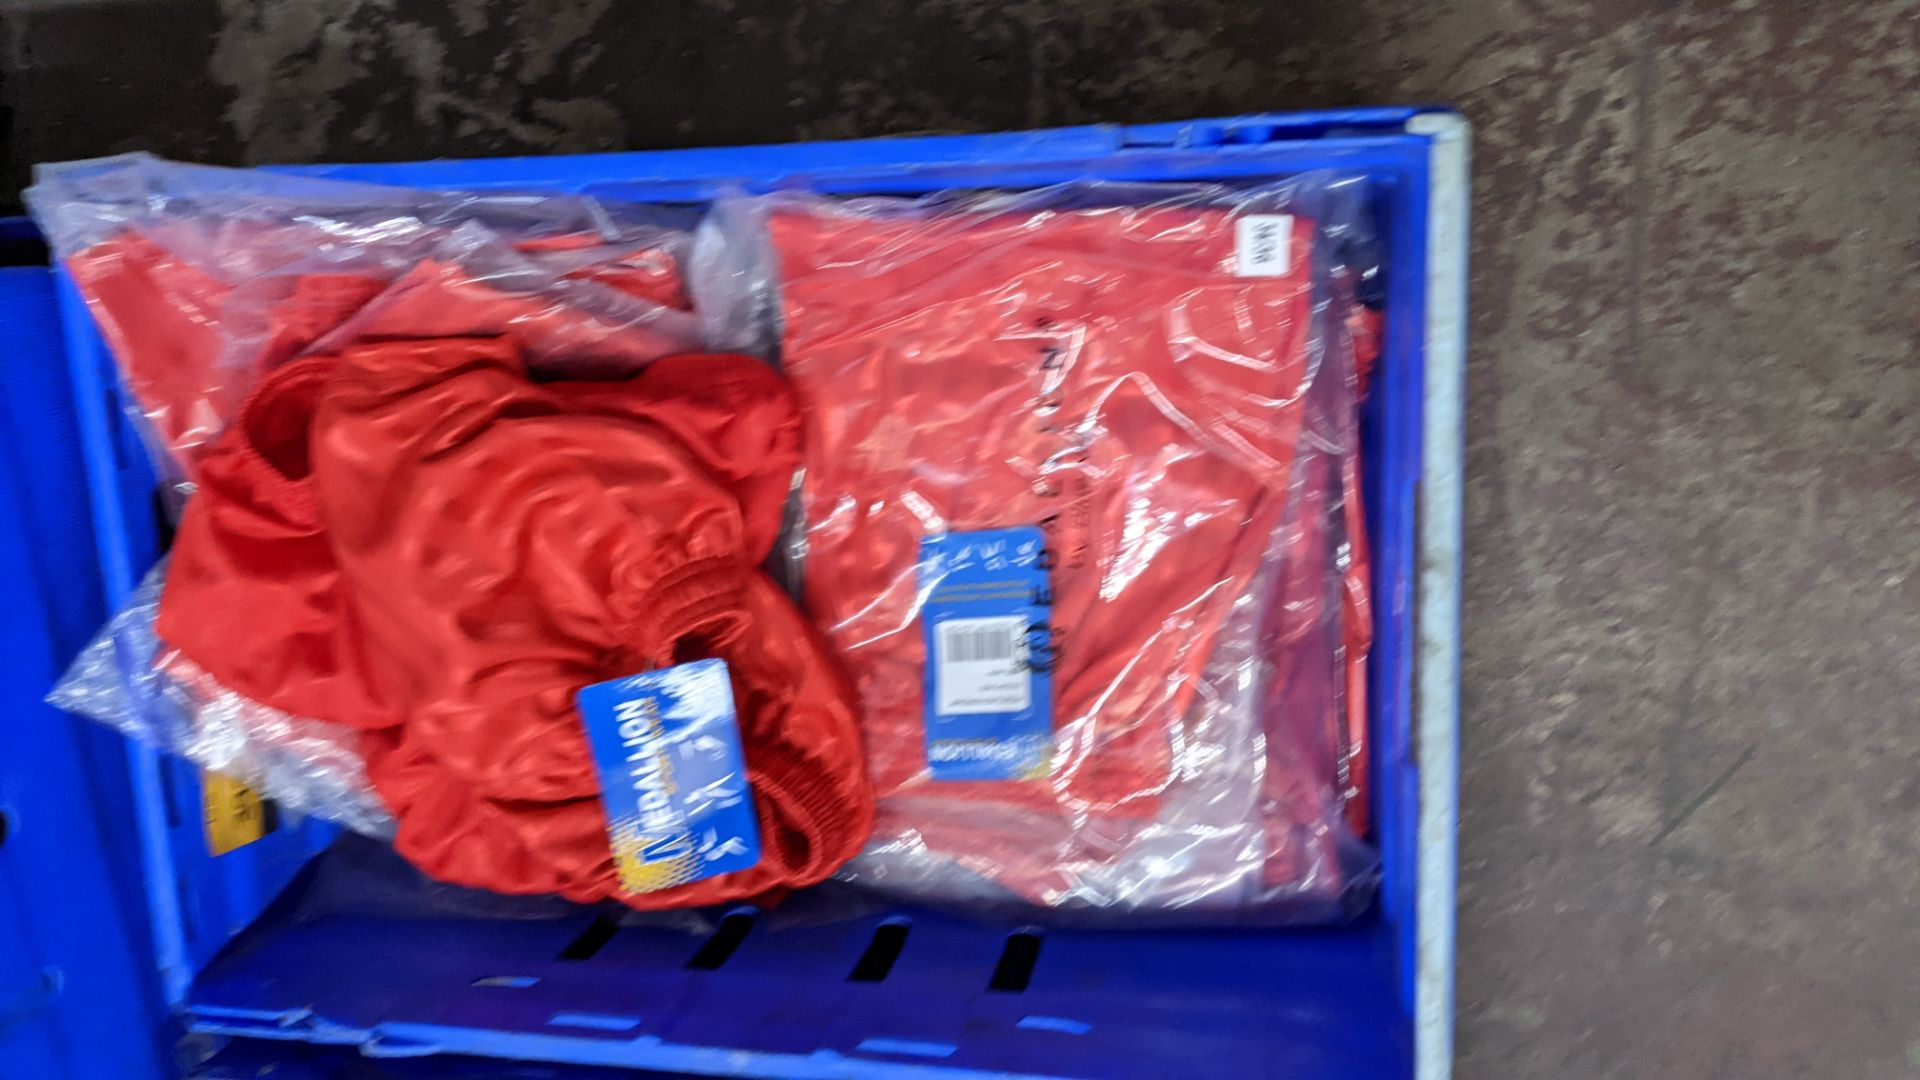 Approx 20 off red children's sports shorts - Image 5 of 5